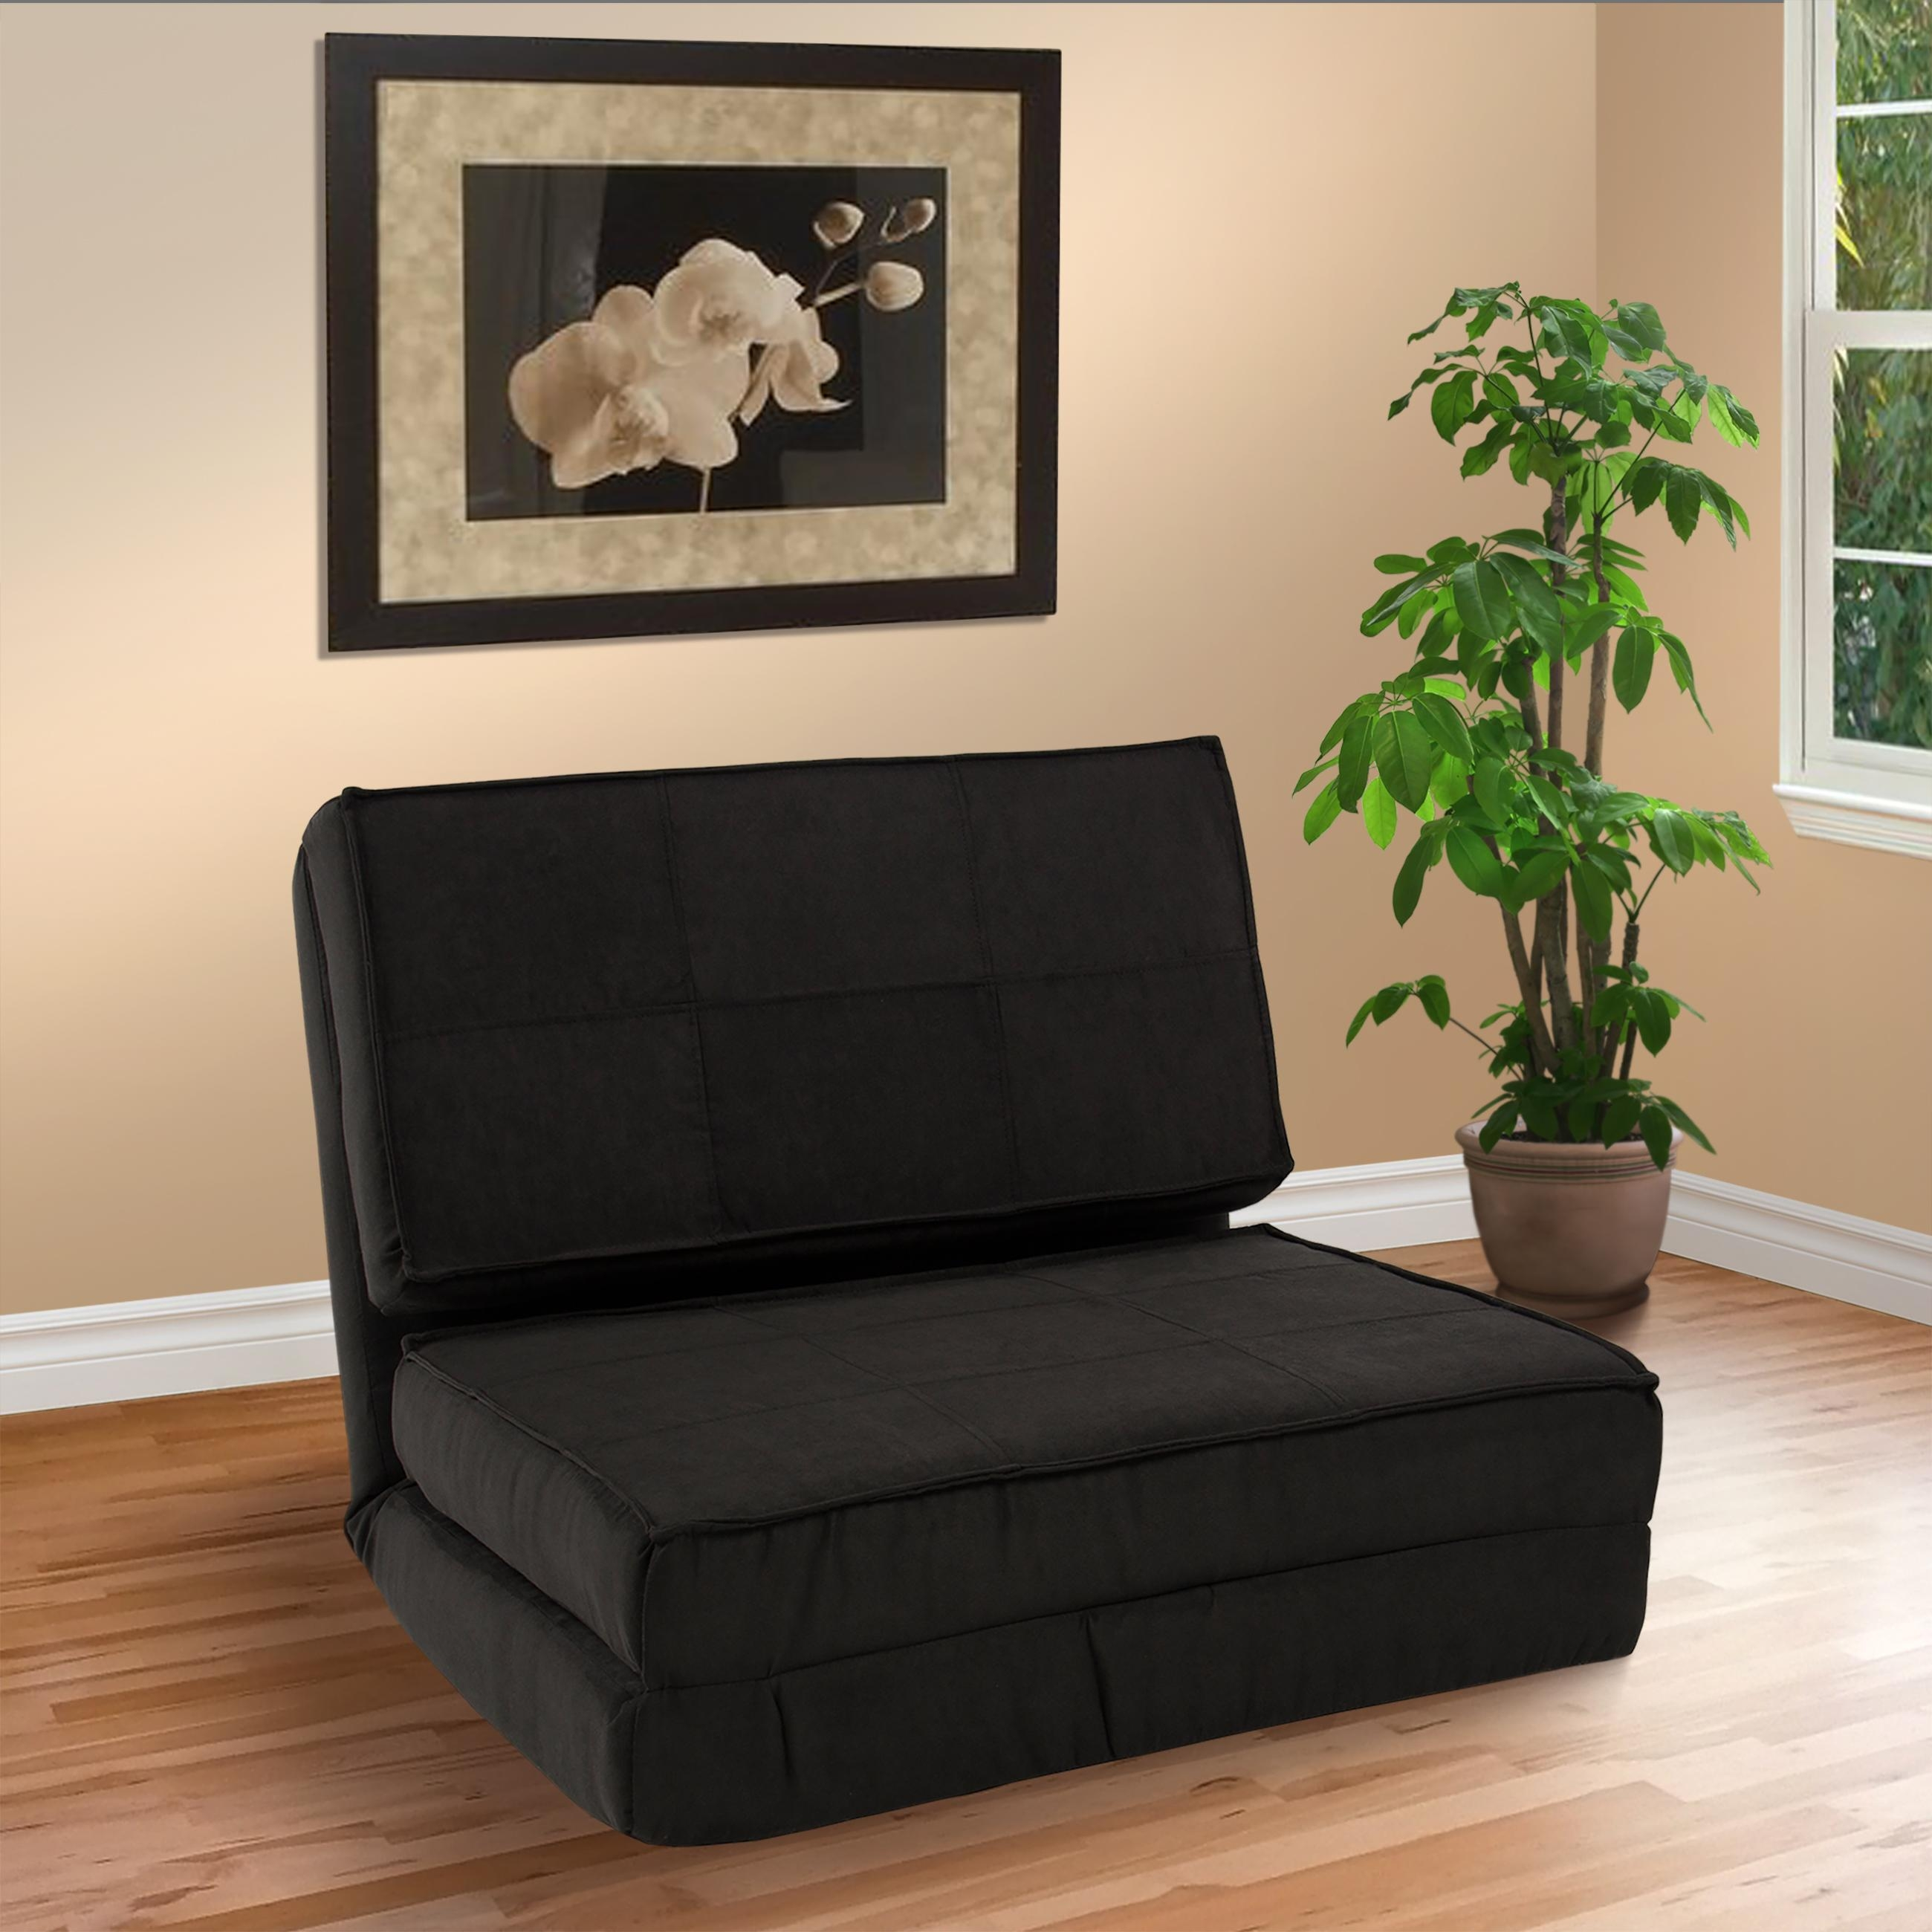 Best Choice Products Convertible Sleeper Chair Bed (Black Throughout Convertible Sofa Chair Bed (Image 3 of 20)